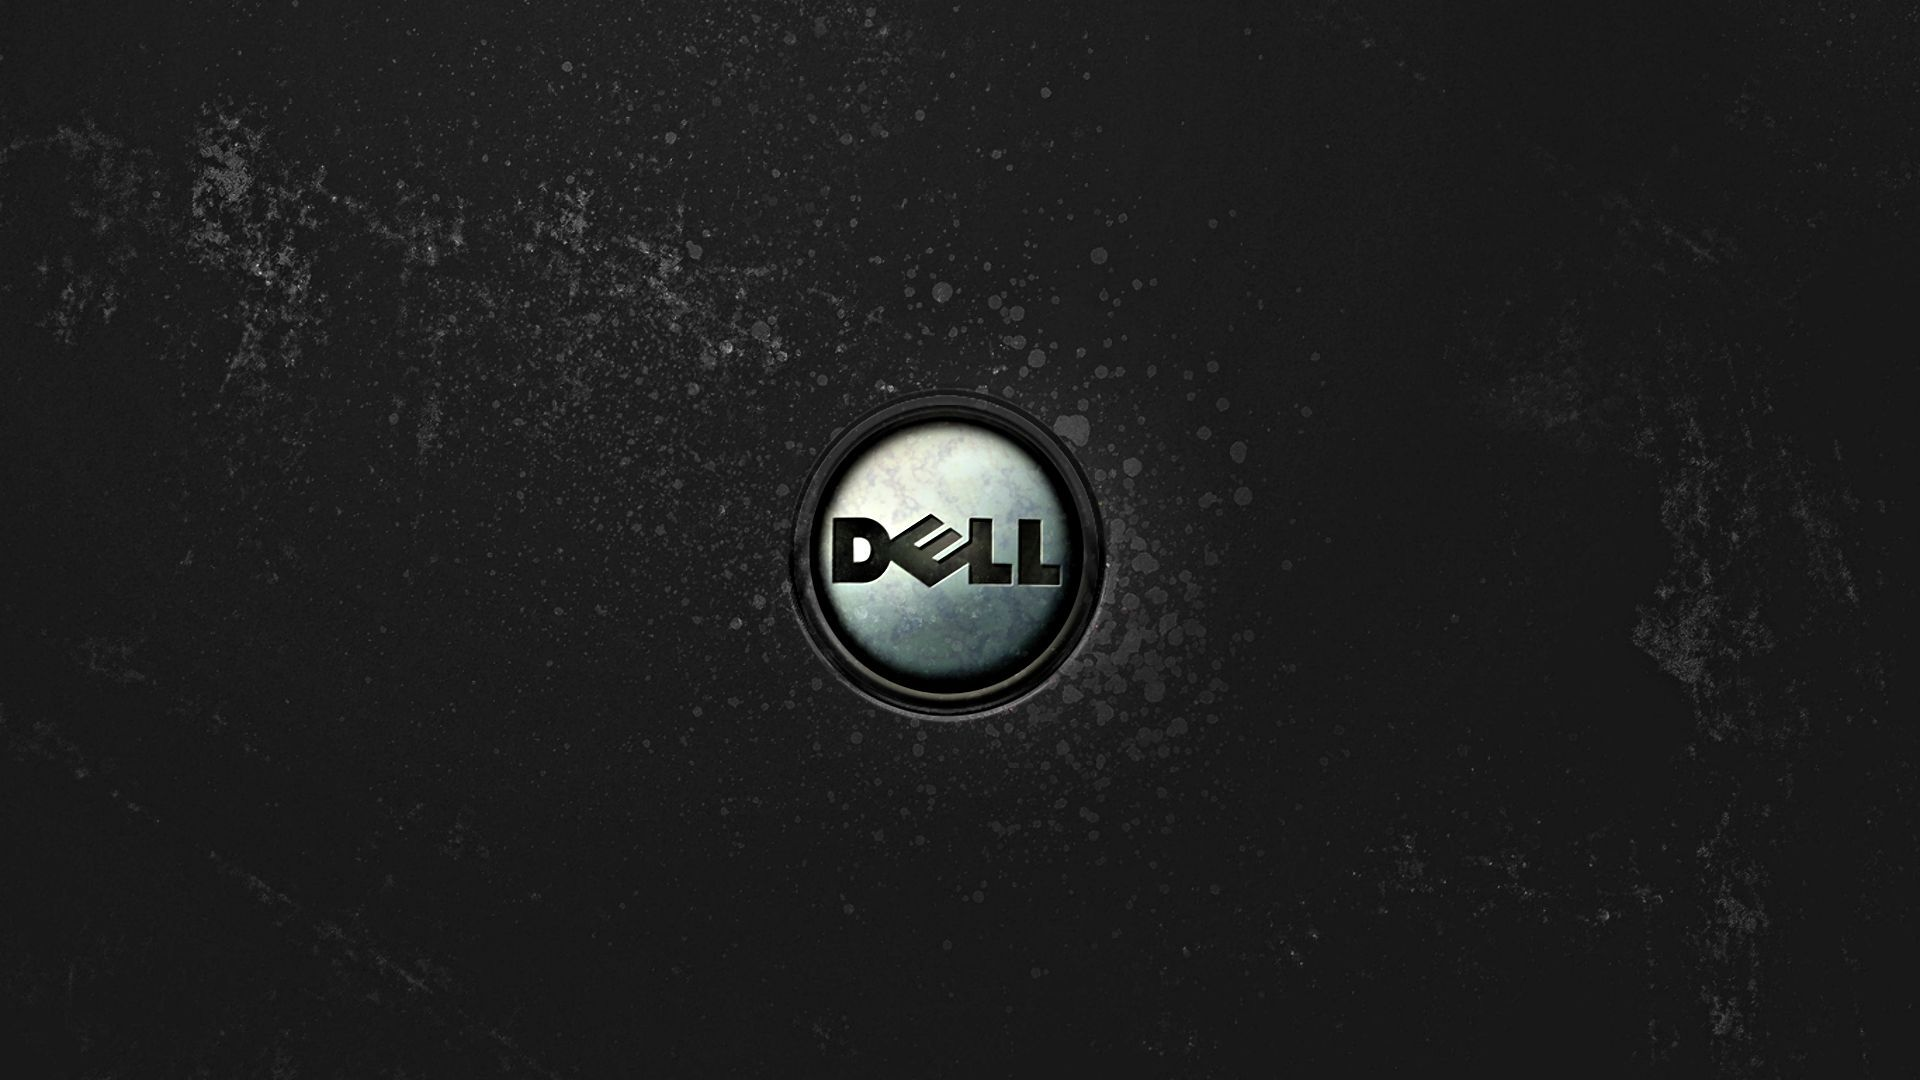 Dell Wallpaper 1920x1080 Wallpapersafari Dell Logo Microsoft Wallpaper Wallpaper